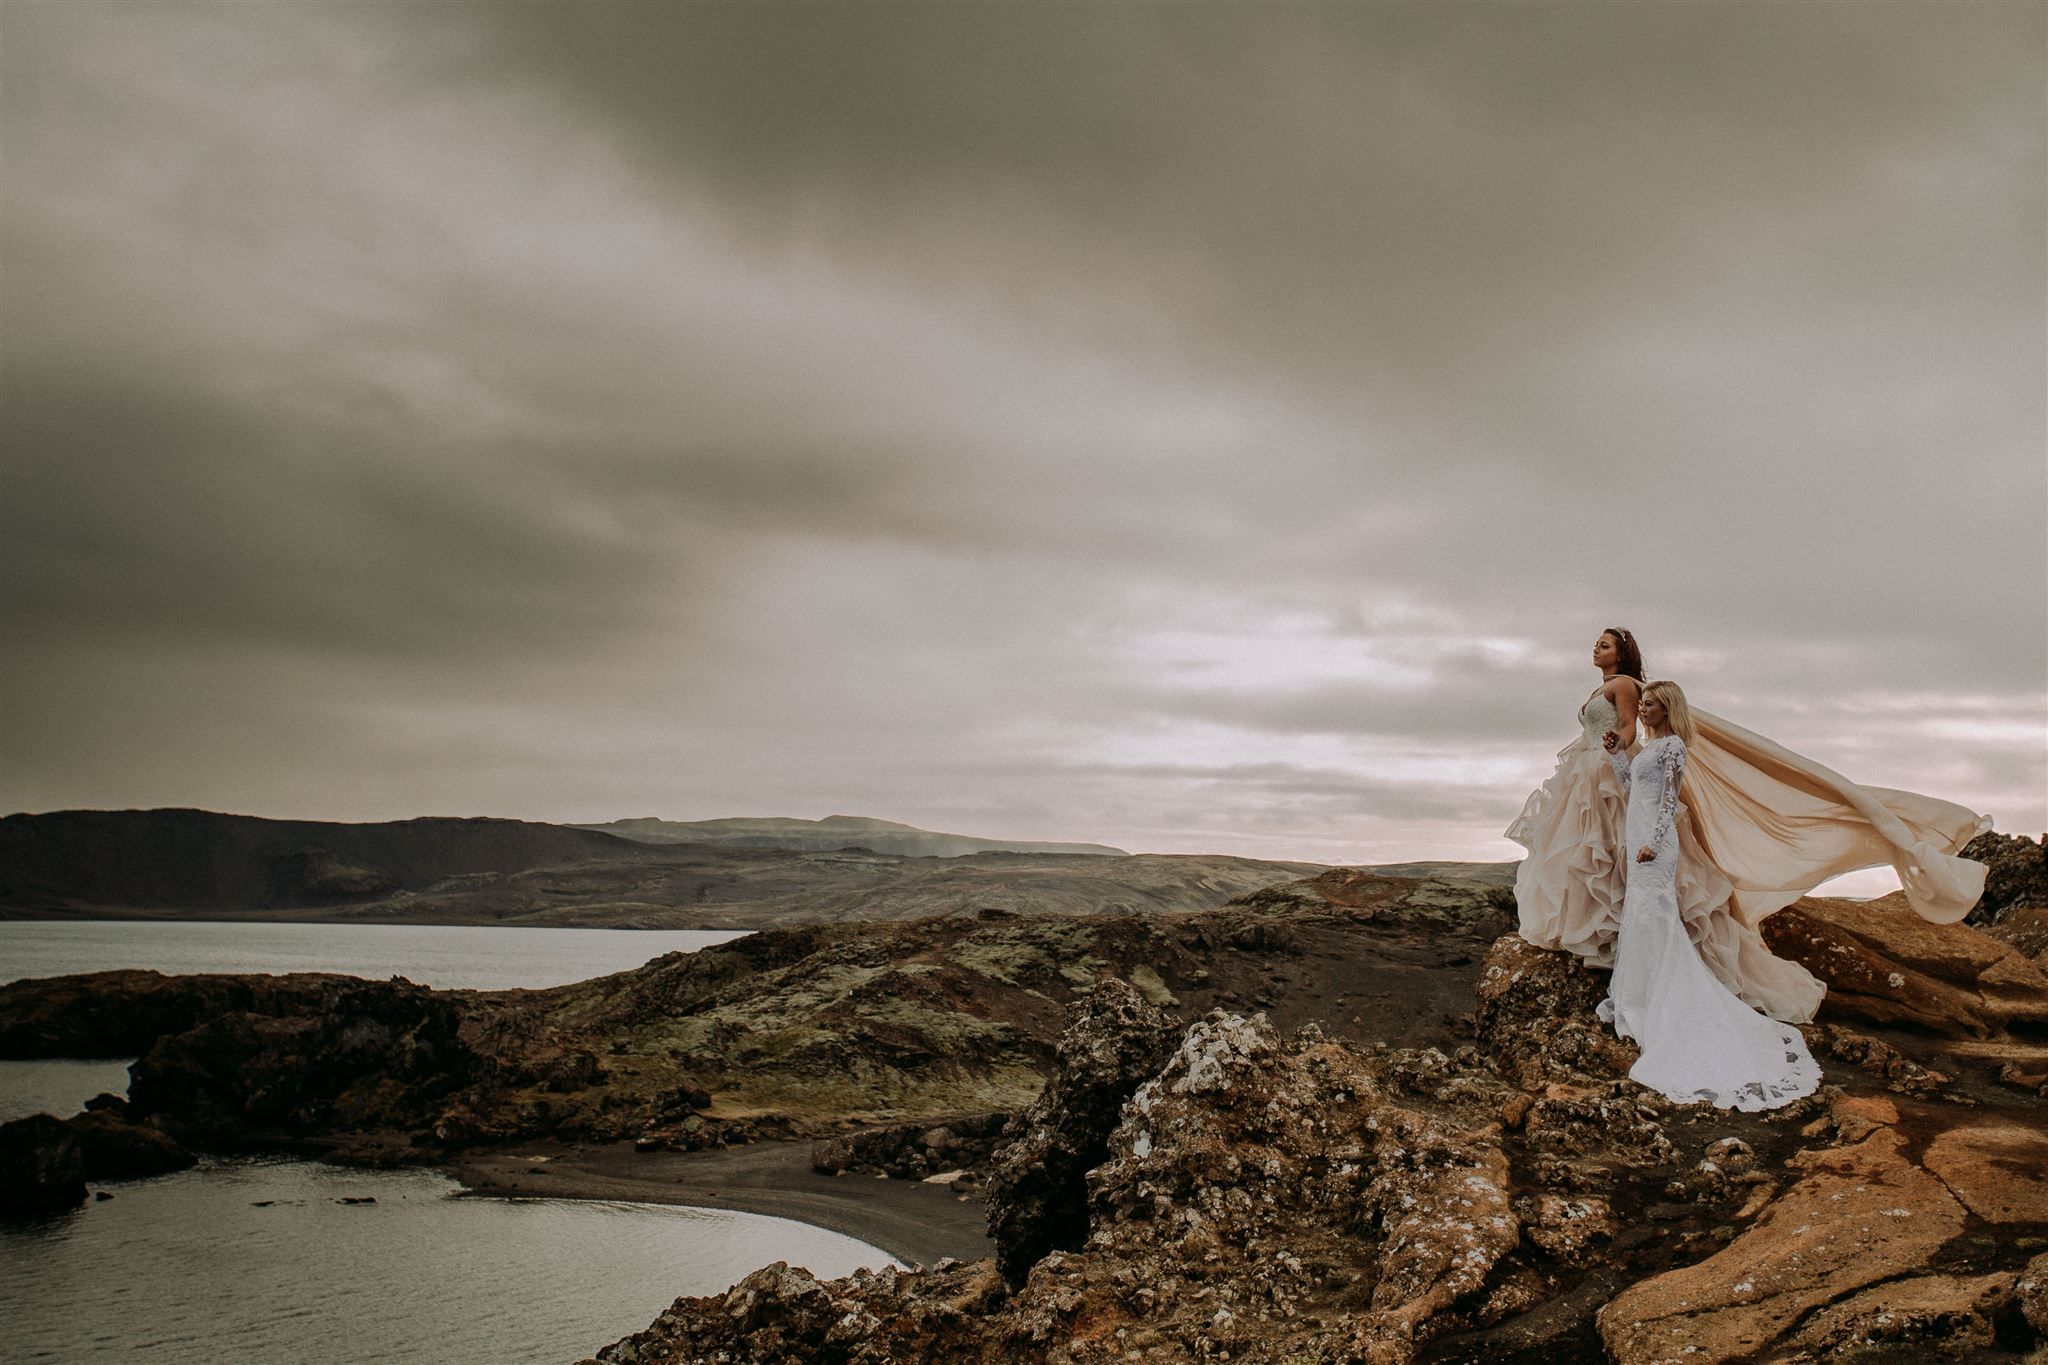 Two brides wearing different wedding dresses shot by Steph Zakas Photography during photoshoot in Iceland.